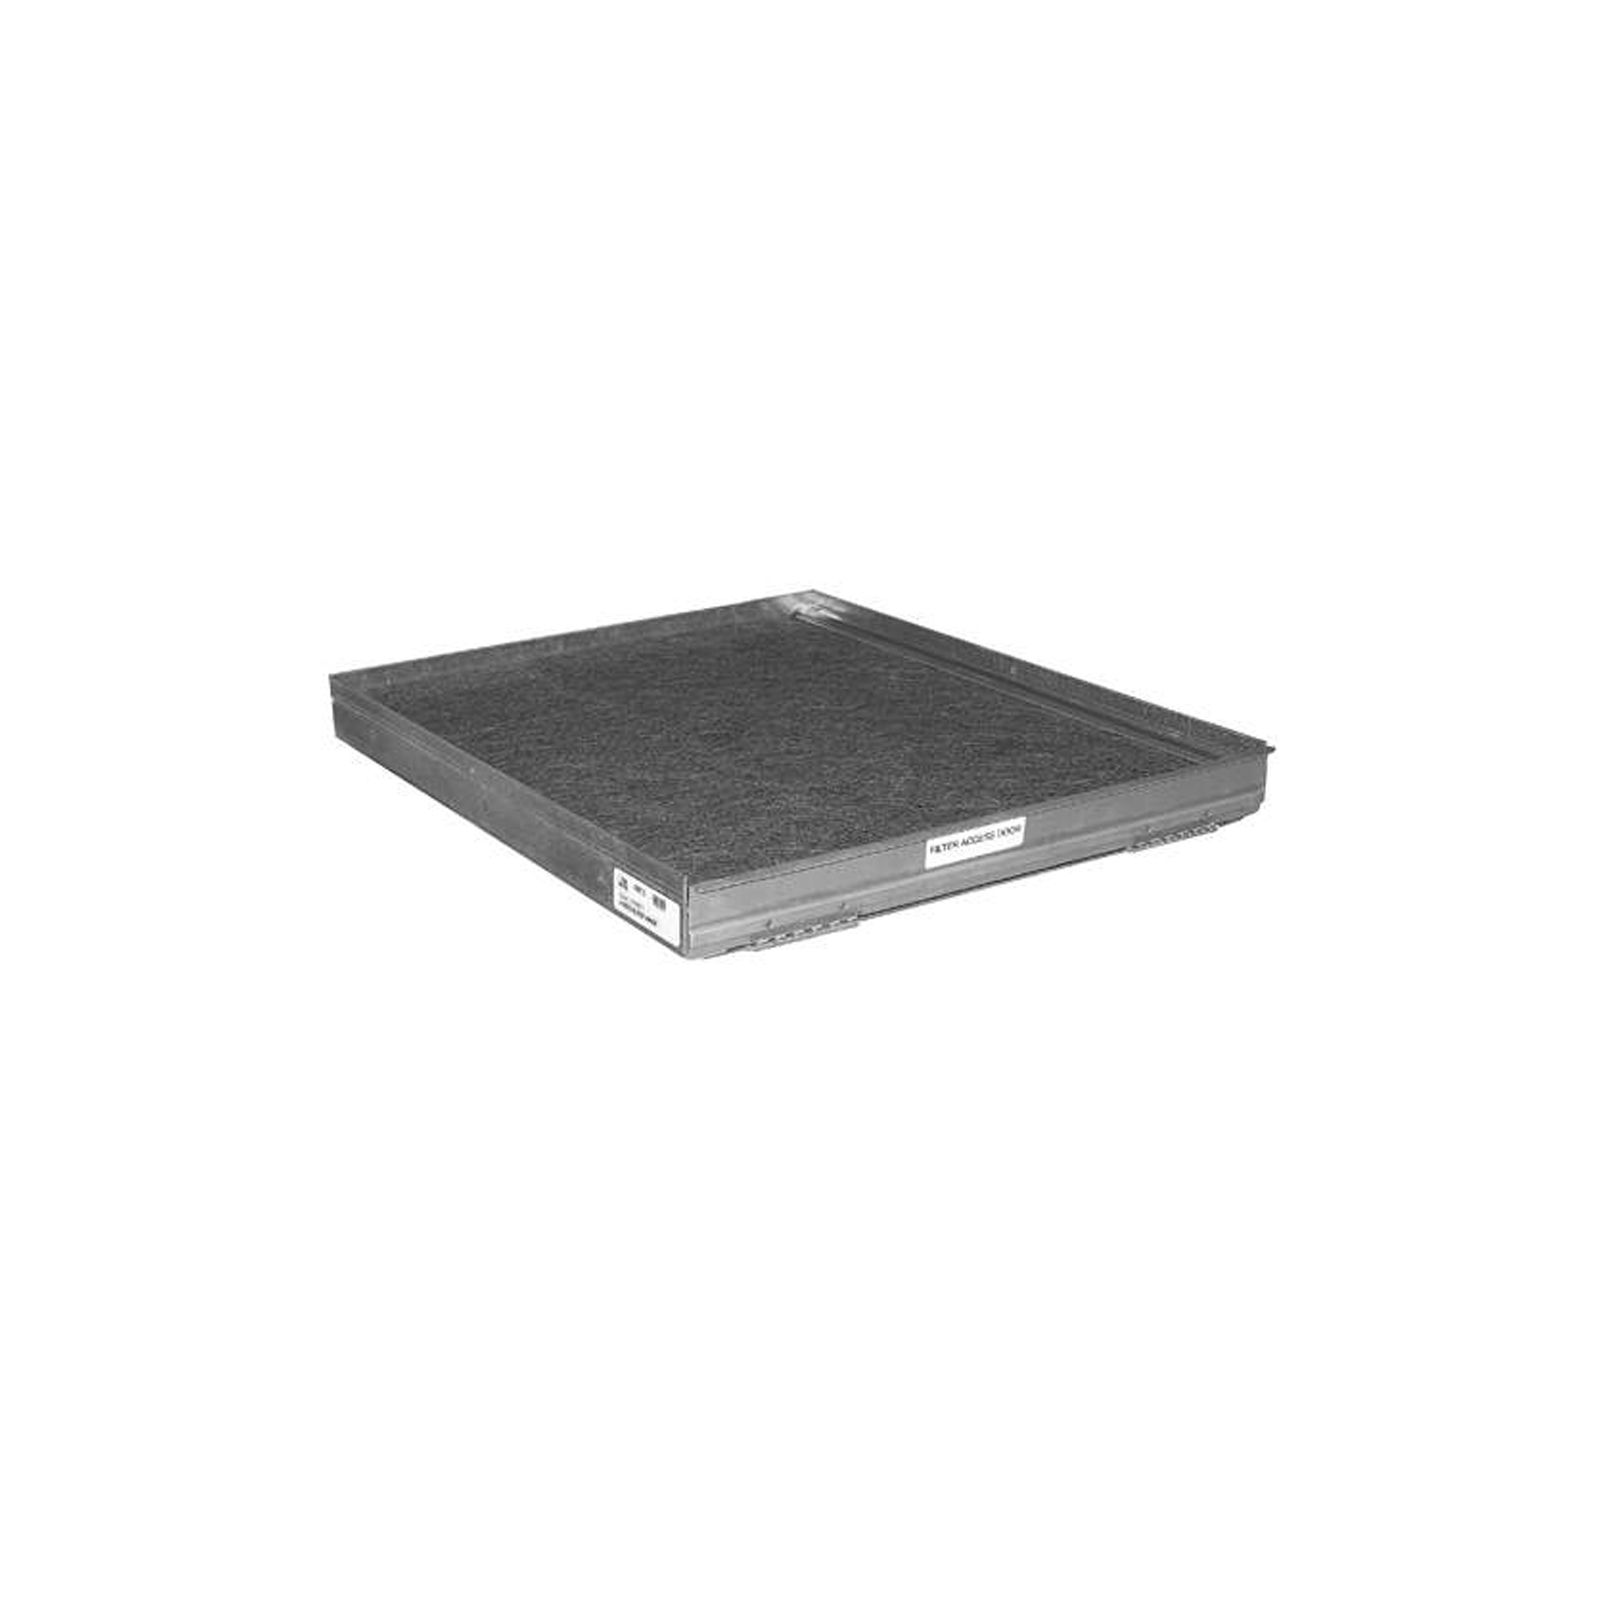 "Miami Tech FFRD24RU -  RU - Fixed Filter Rack With Door For Rheem/Ruud, 24-7/8"" X 2"" X 21-1/2"""